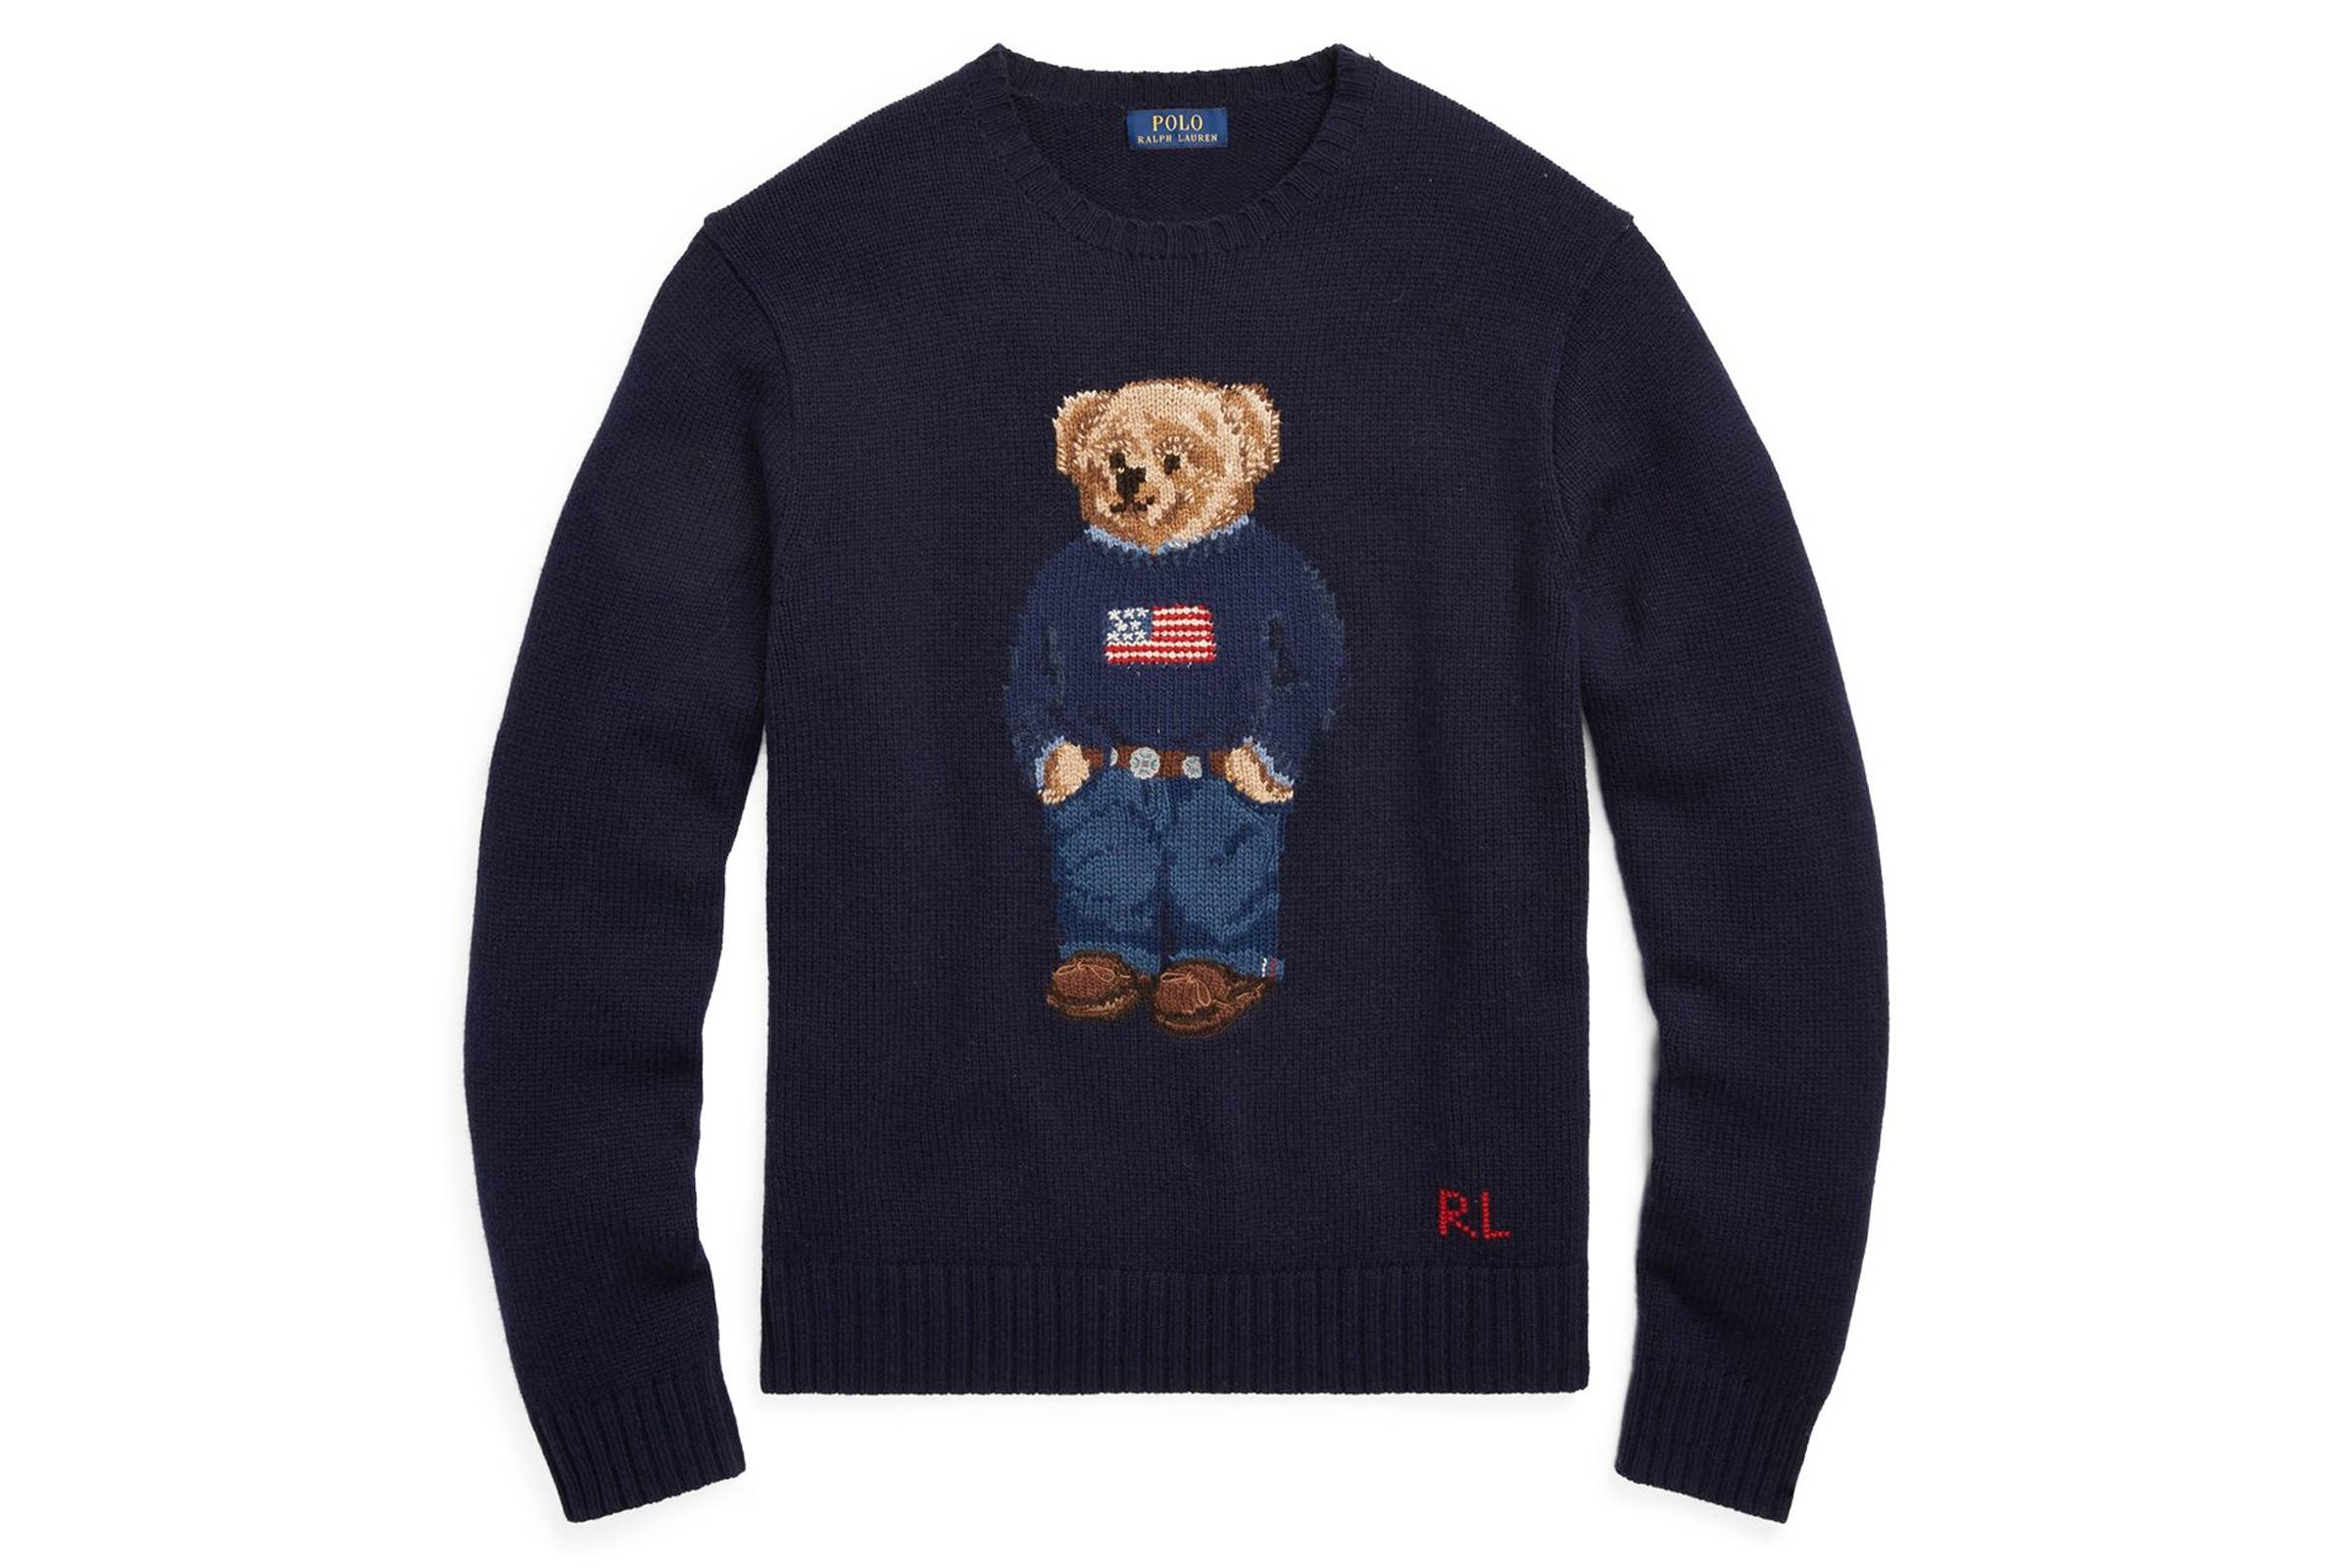 43cd8ec3 The signature Ralph Lauren Polo bear started as an inside joke among Ralph  Lauren employees. Inspired by Jerry Lauren's Steiff teddy bear collection  (which ...